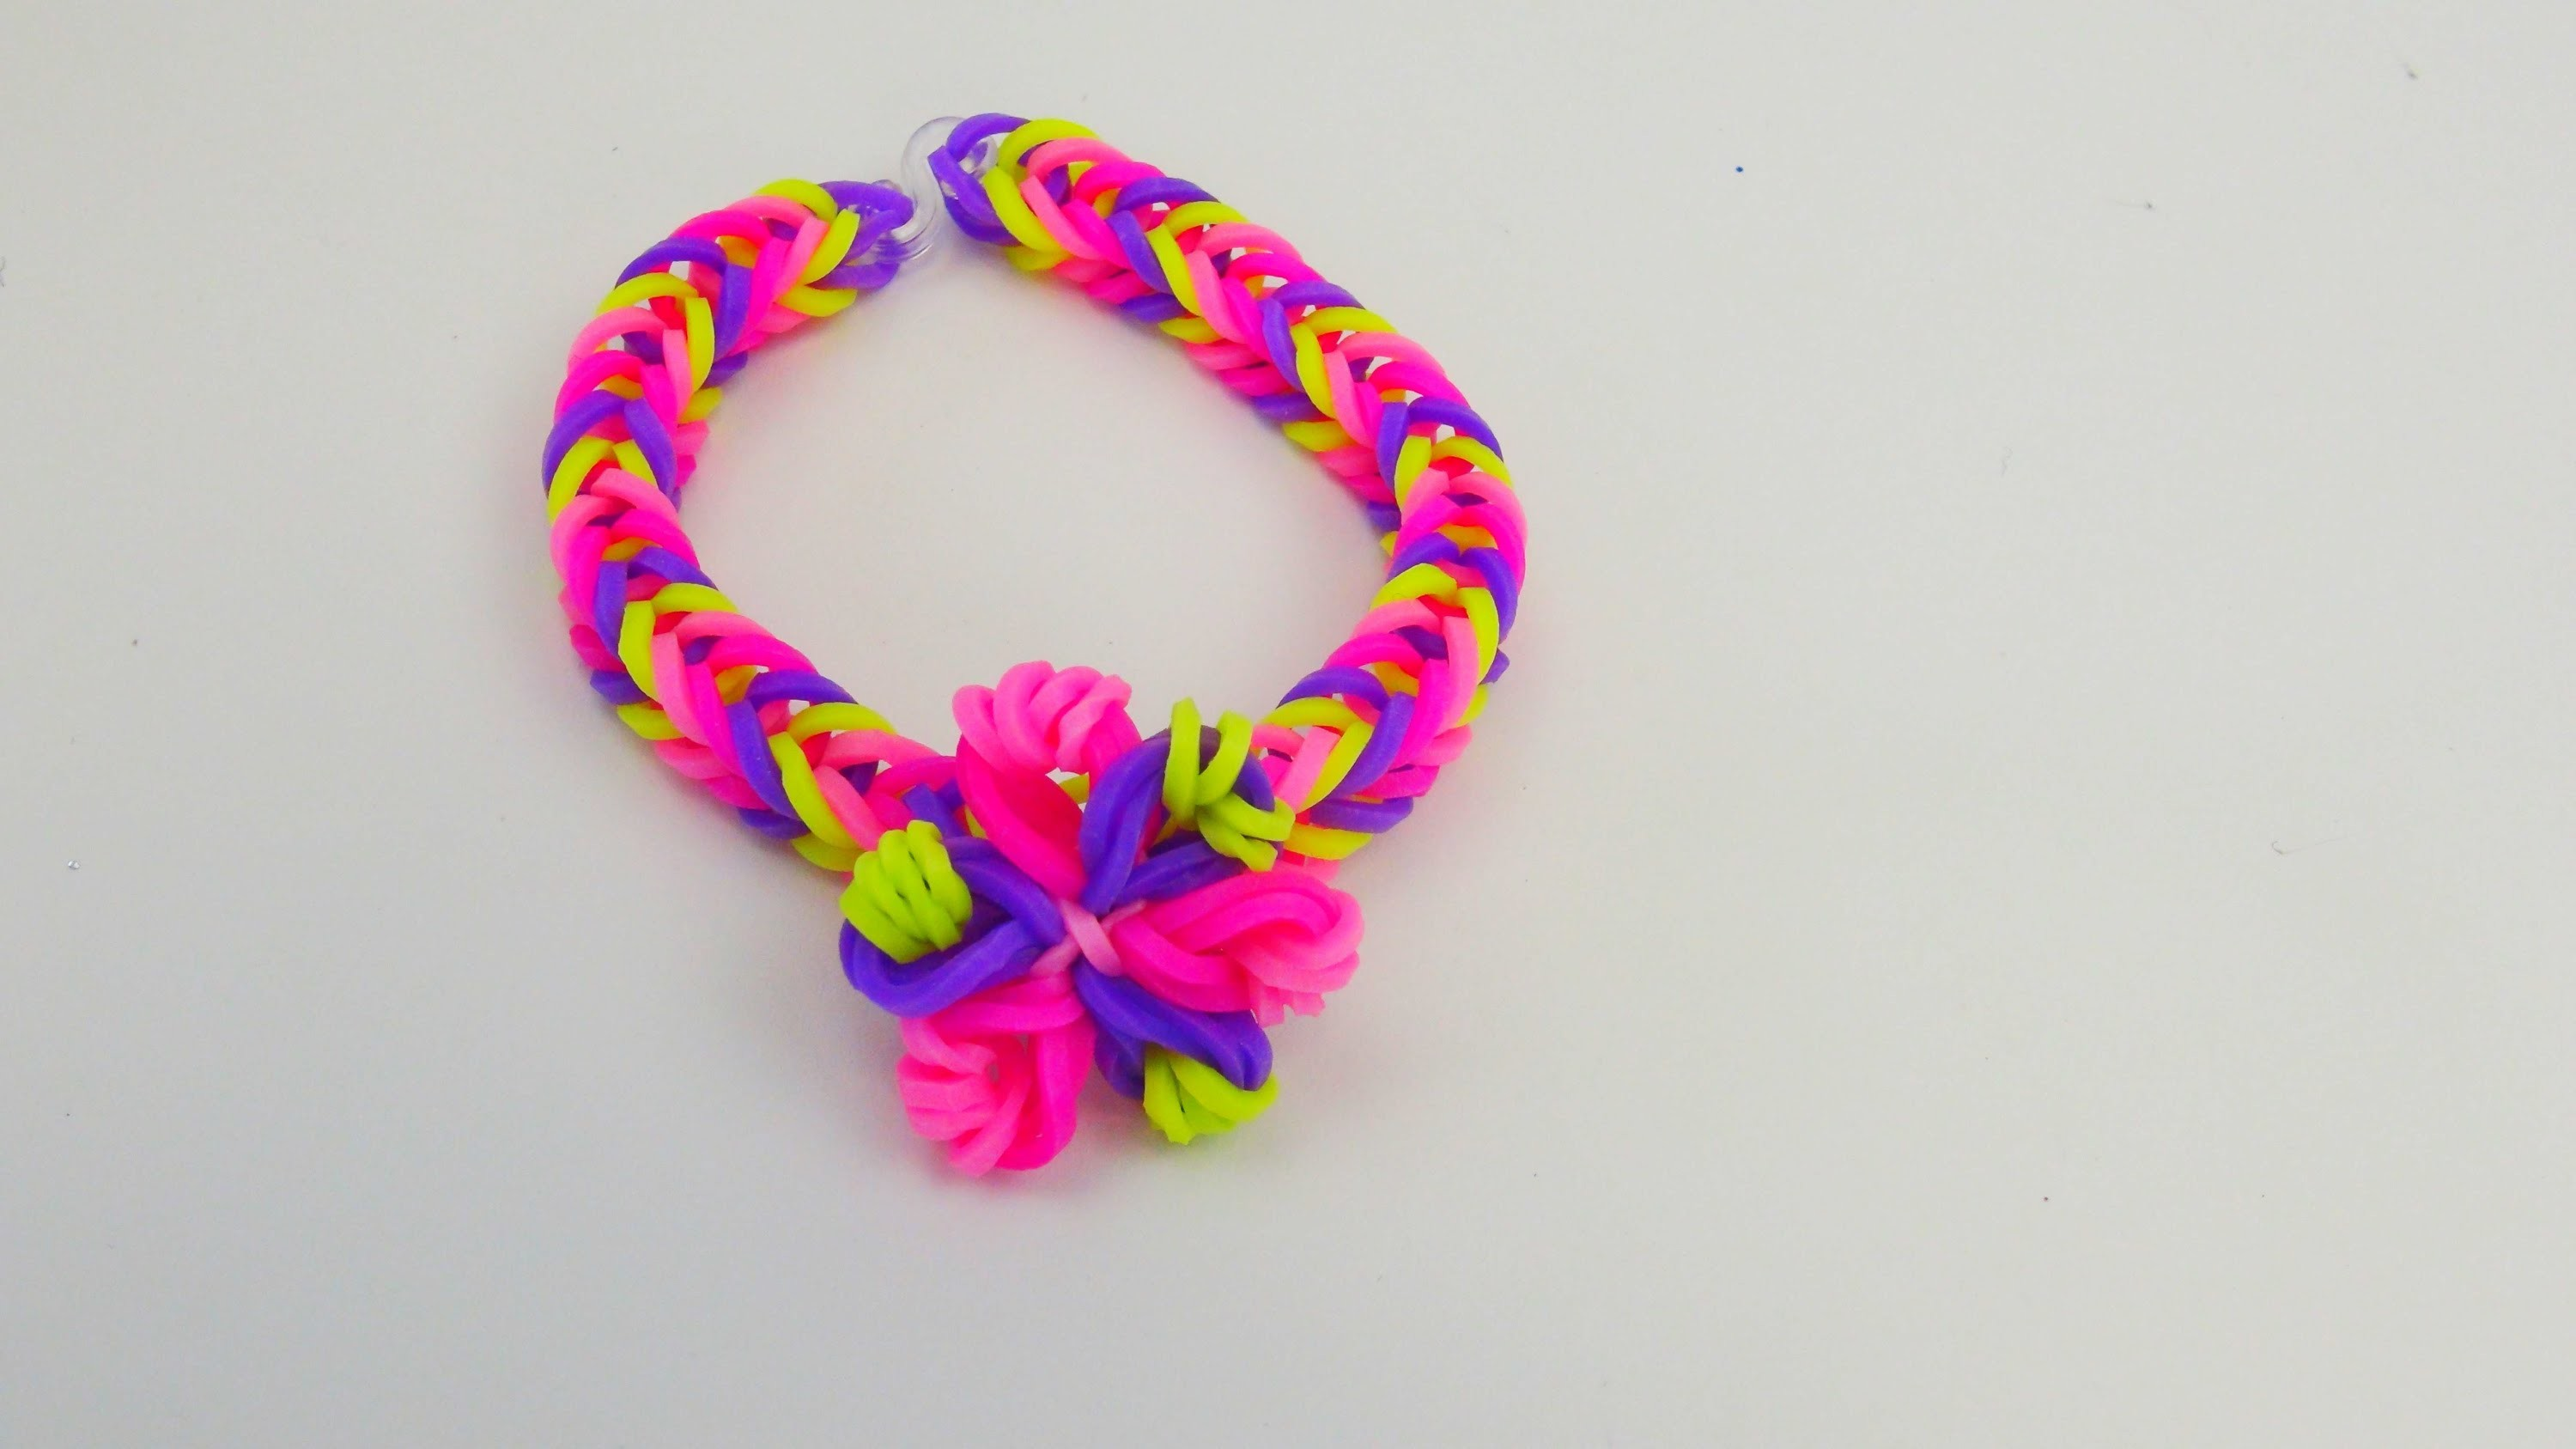 Easy Loom Band Flower Bracelet. Fishtail mit Blume Armband Tutorial | deutsch